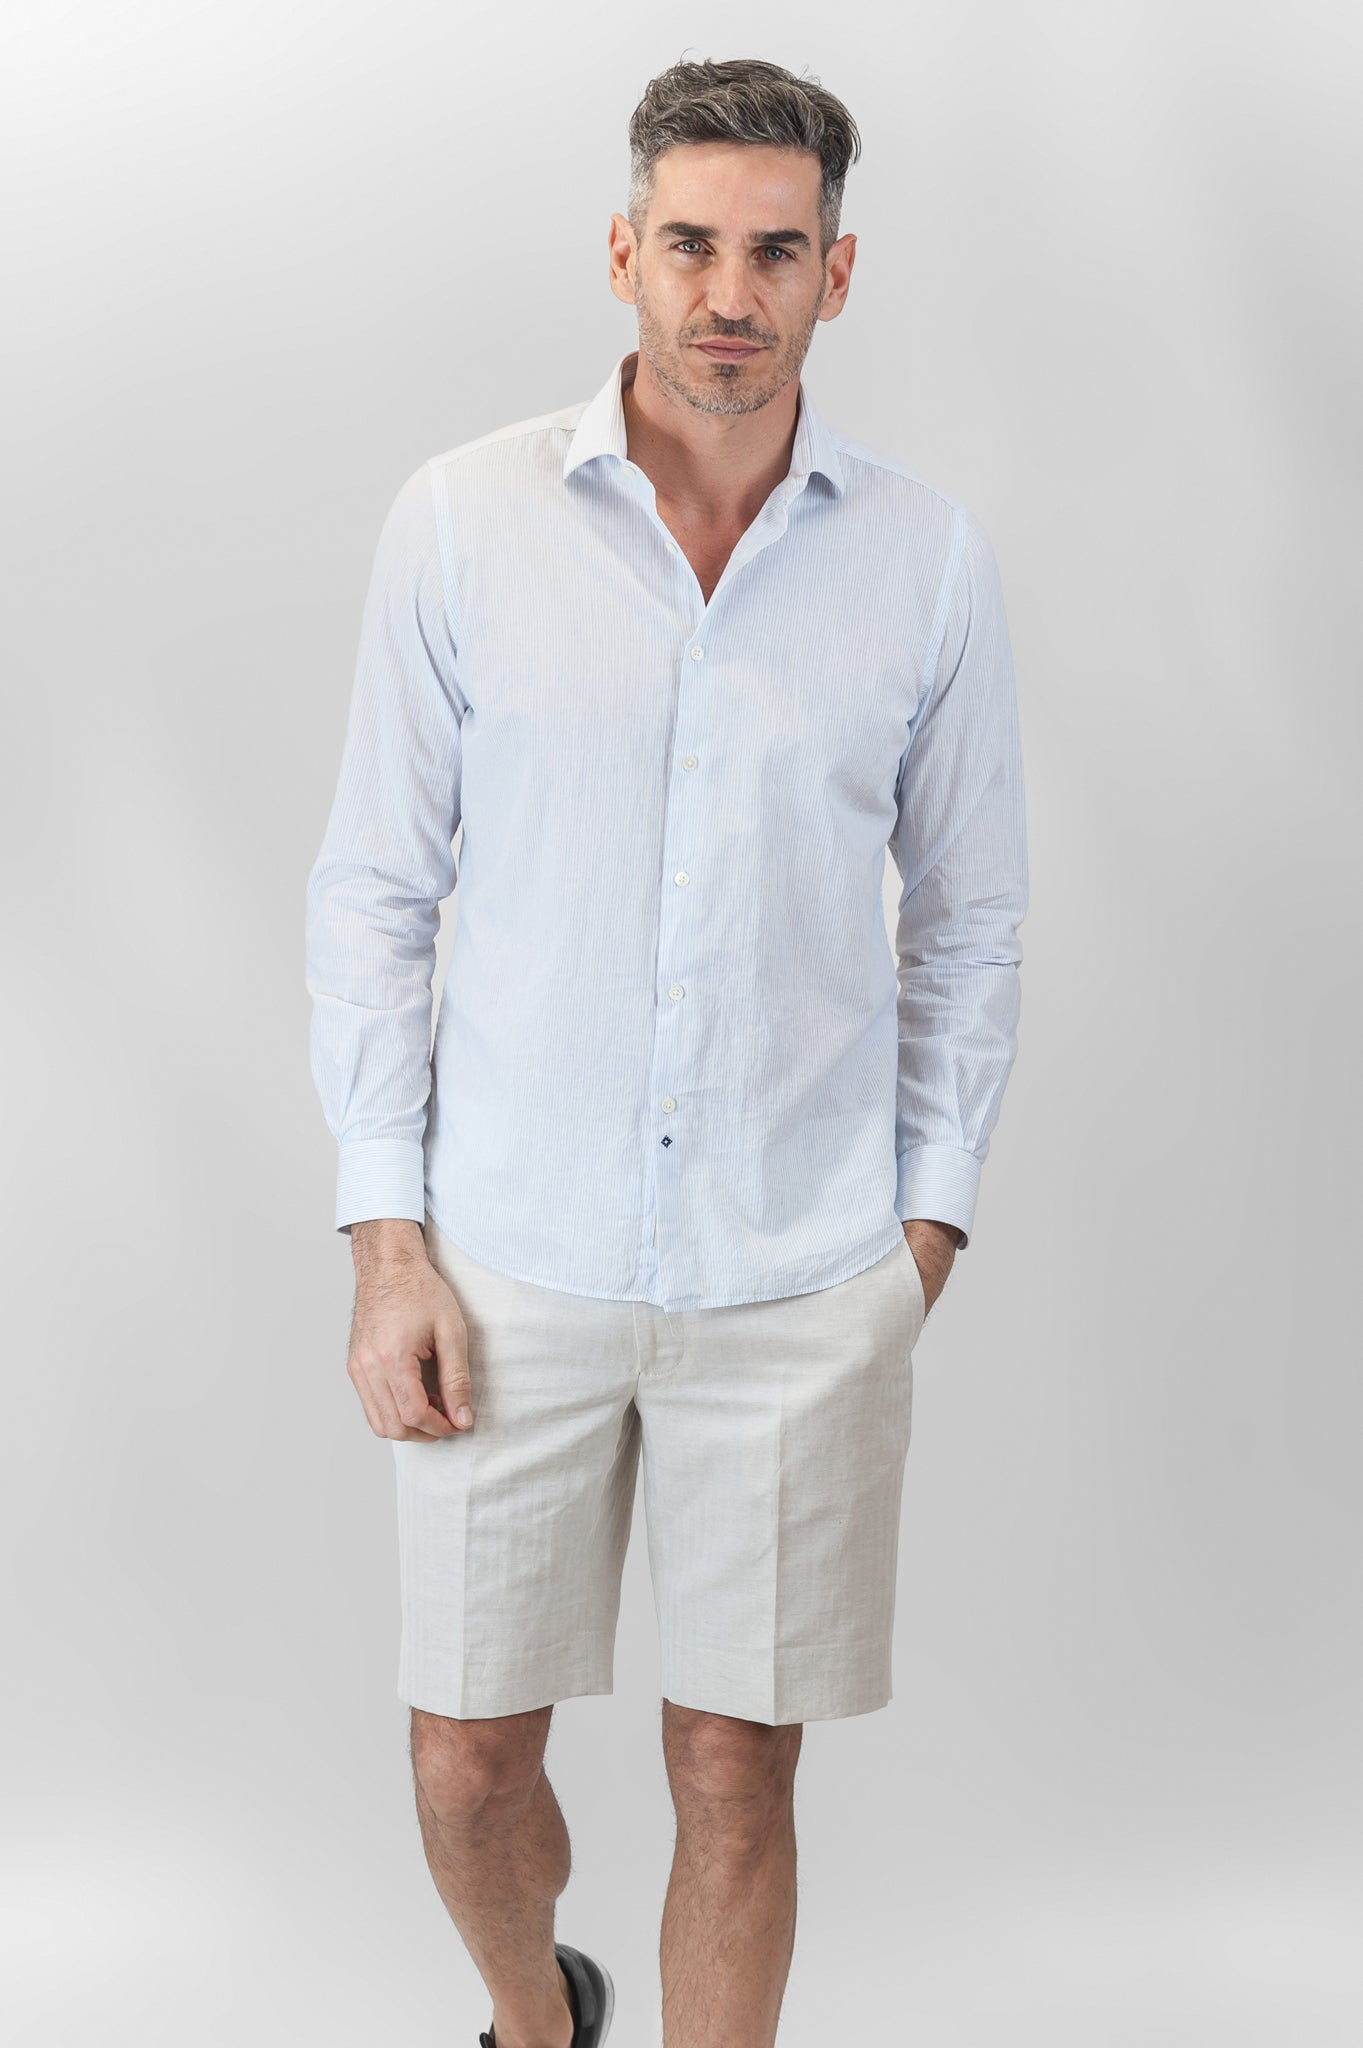 Clamenc Soft Stripe shirt (linen and cotton)